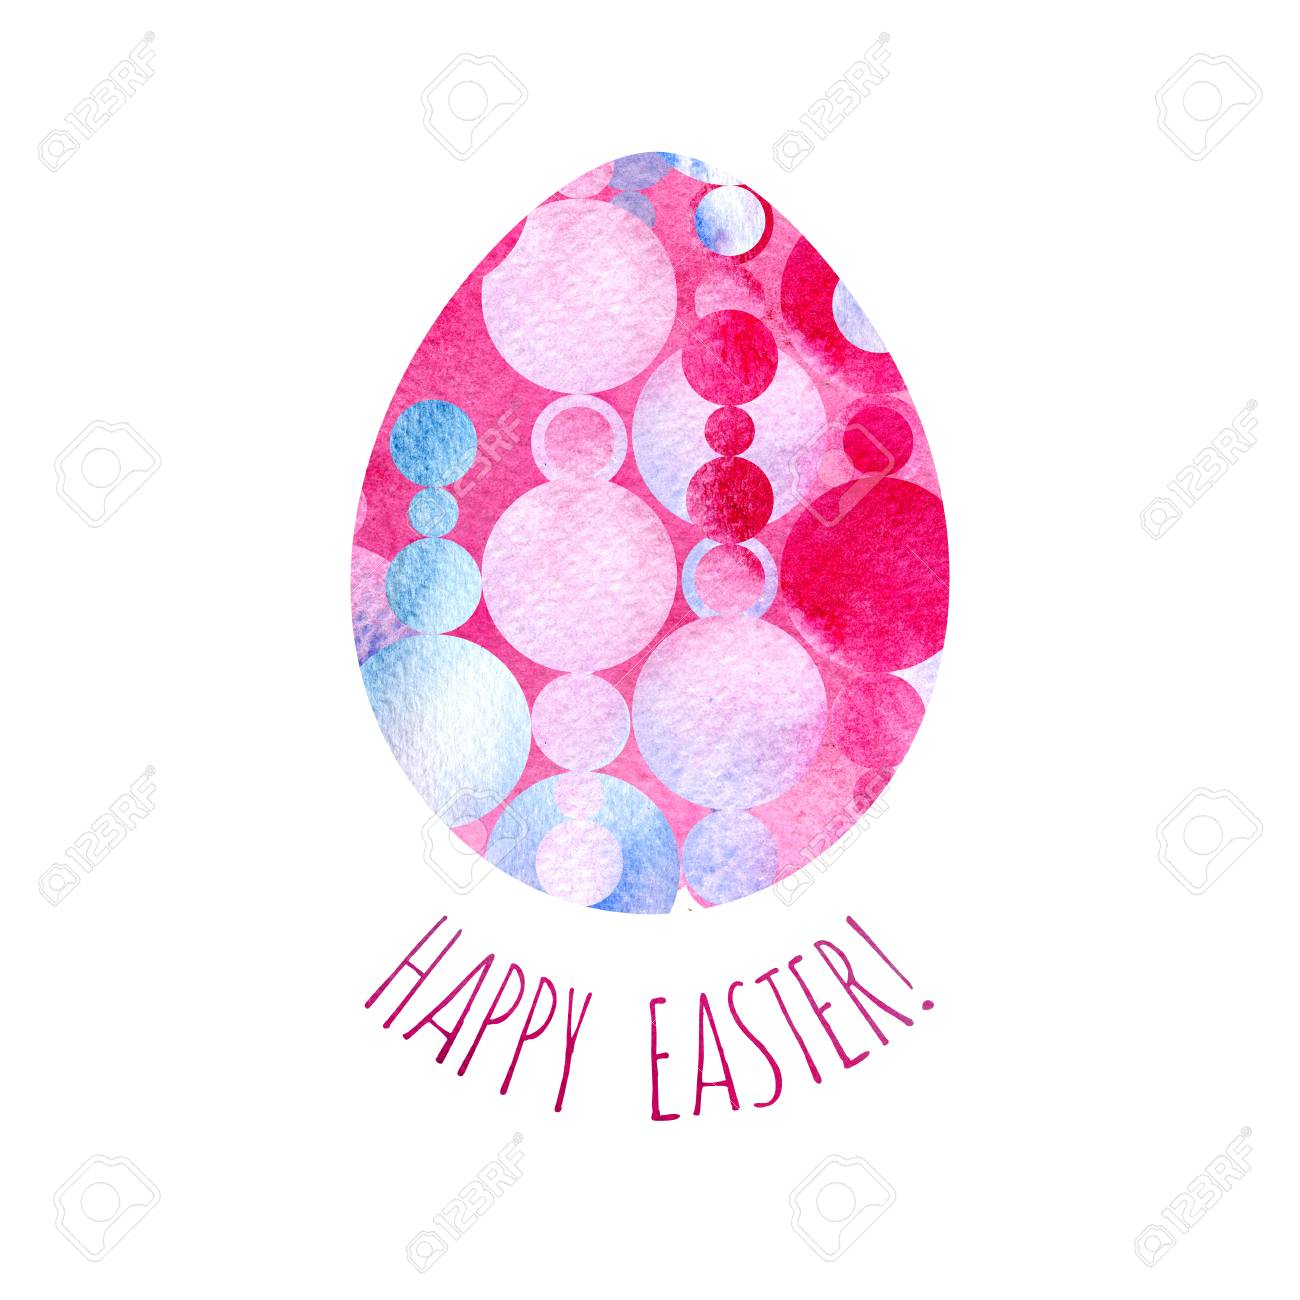 modern happy easter template for greeting card or invitation stock